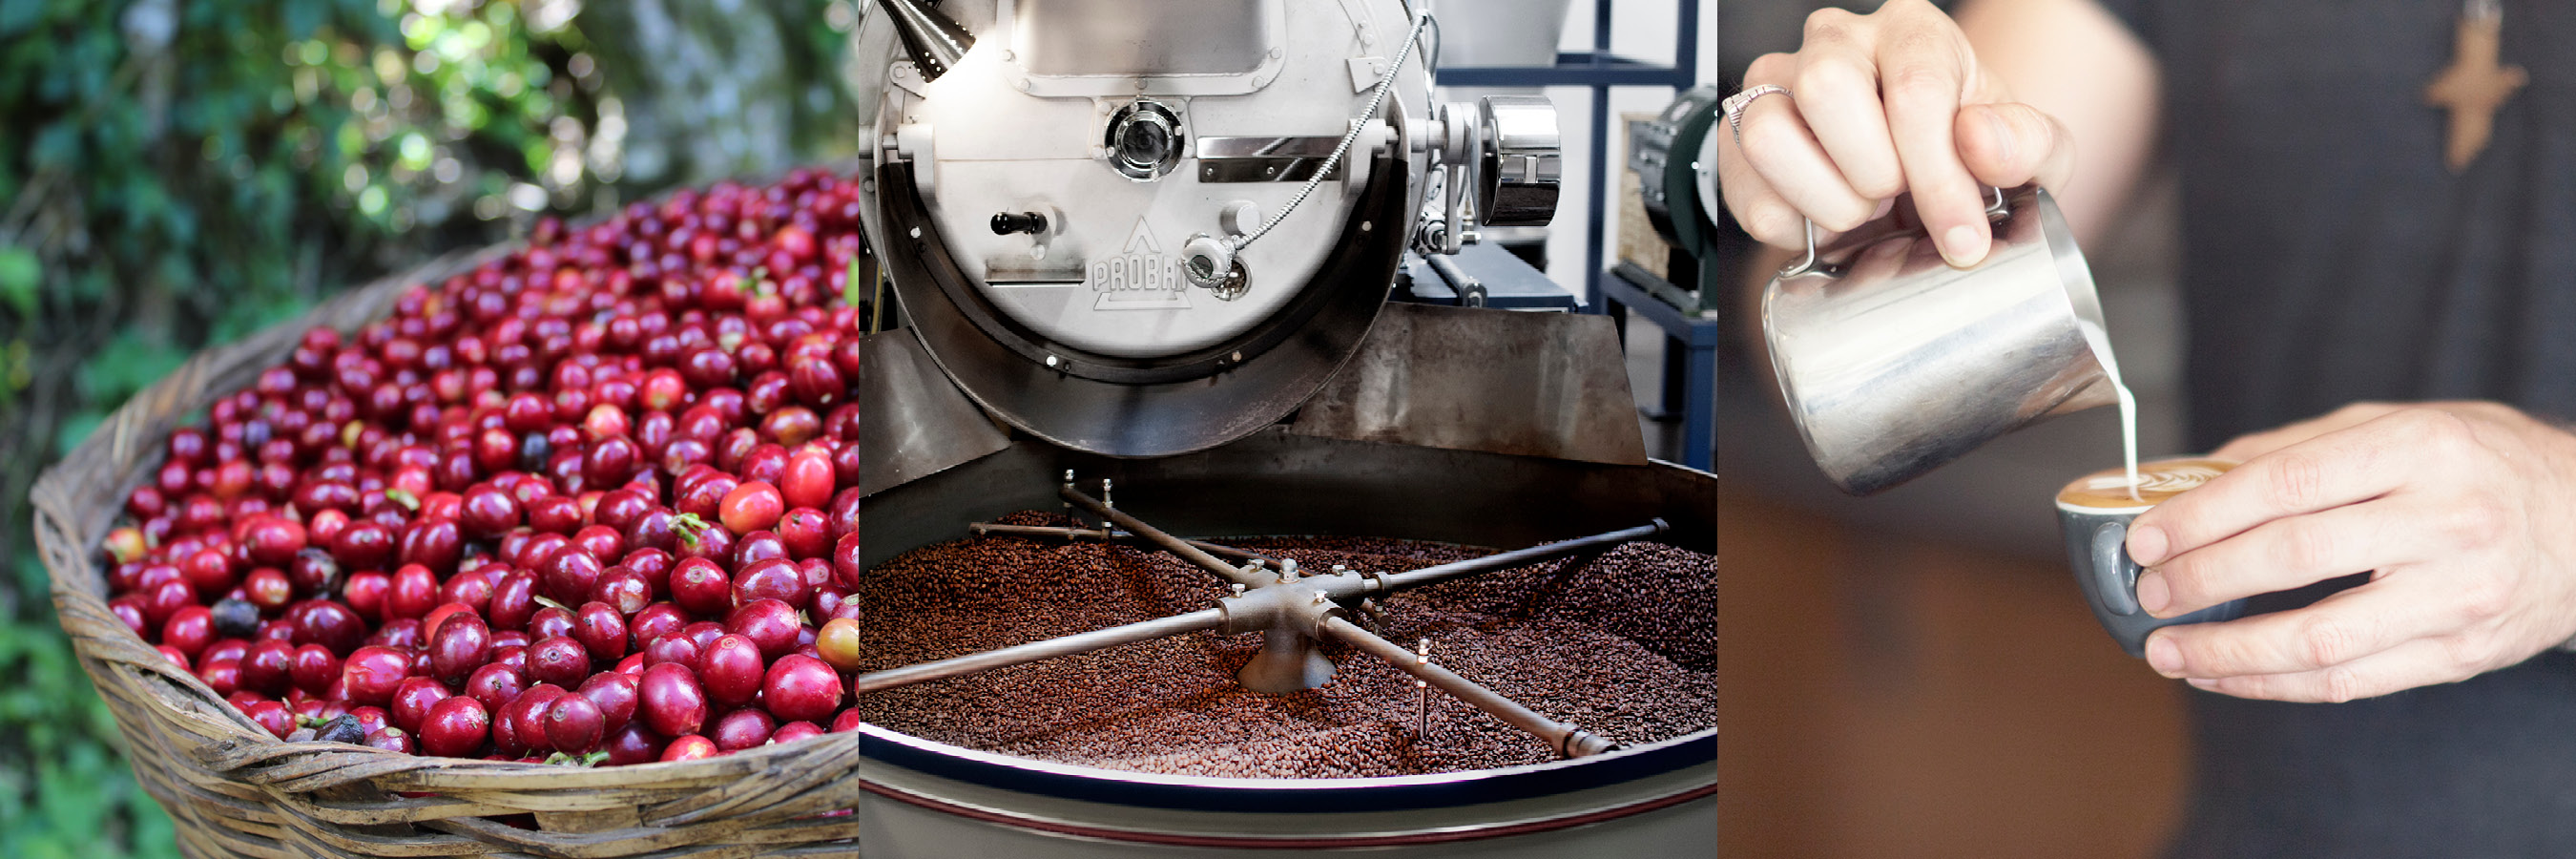 THE PILOT COFFEE ROASTERS STORY